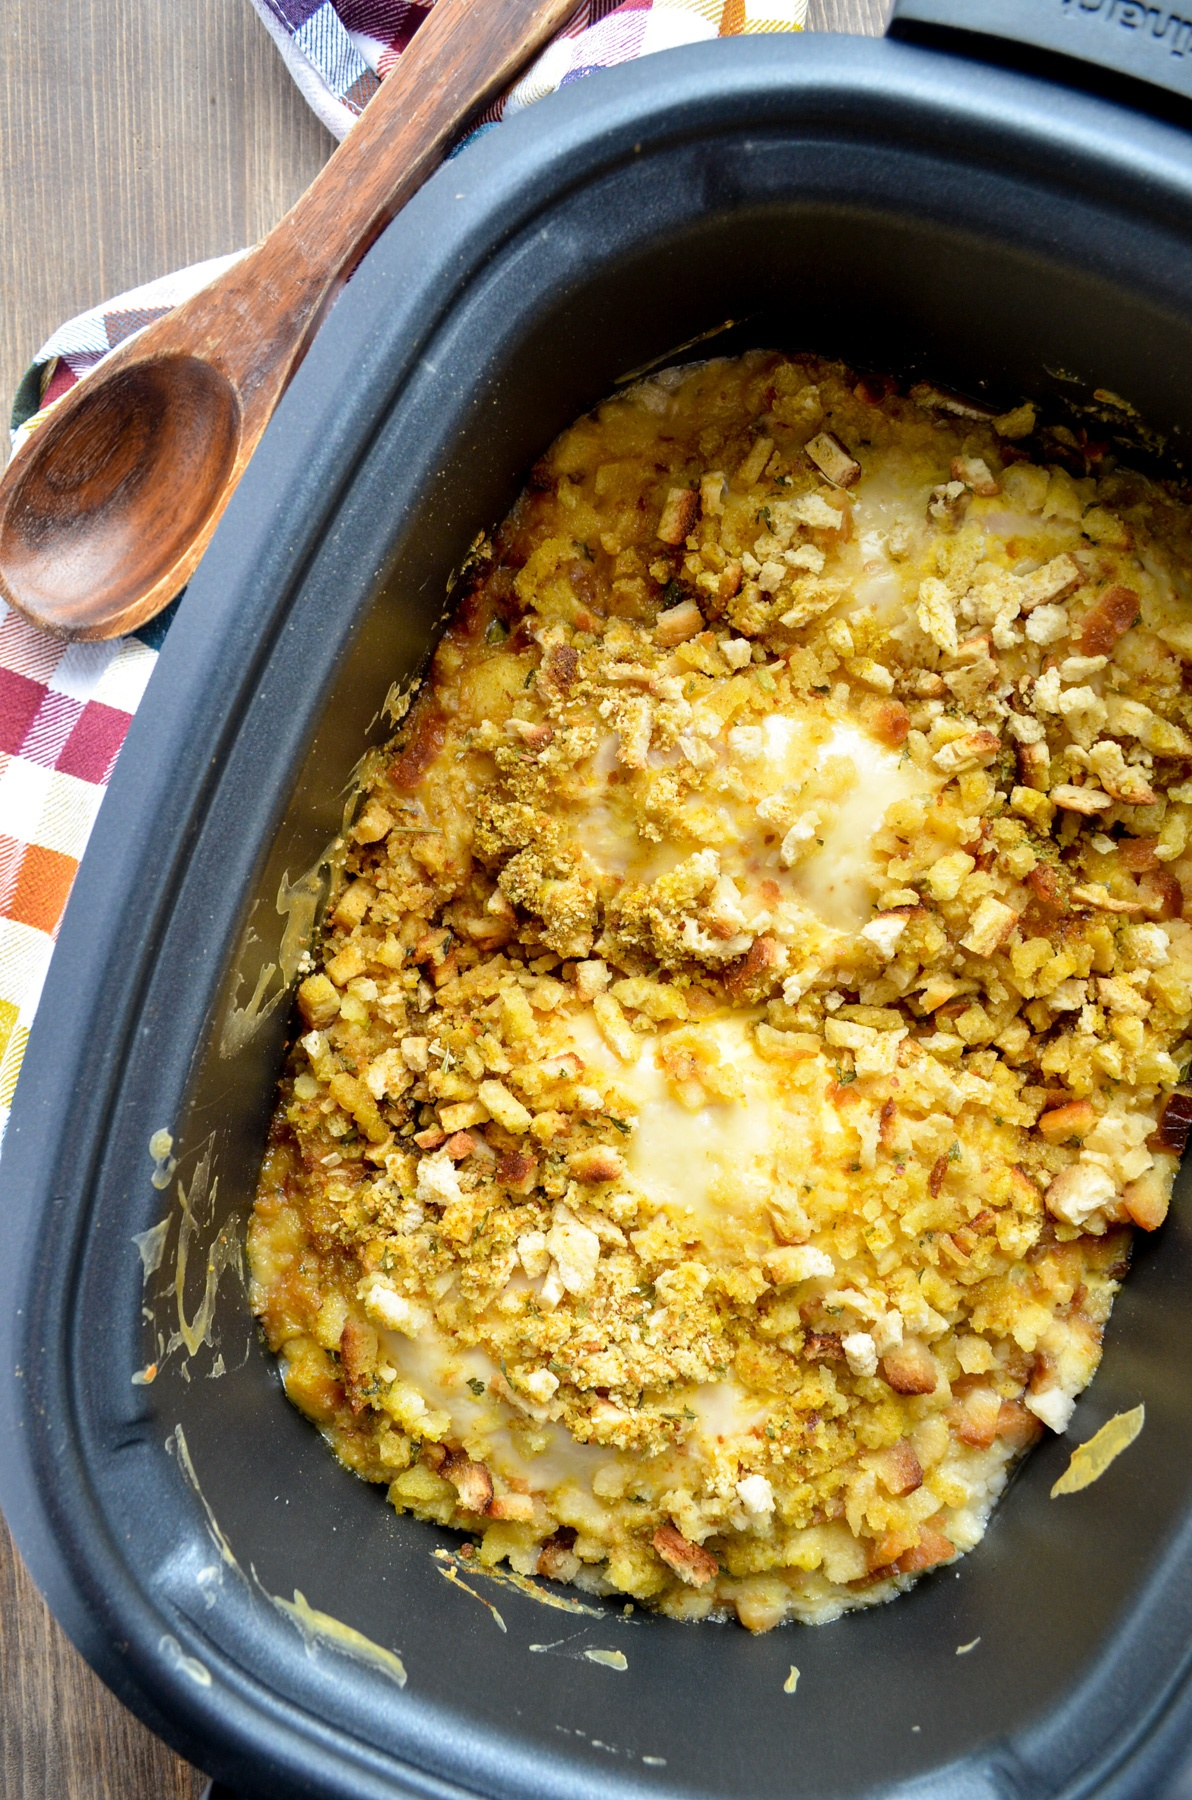 A slow cooker on a wood table, with stuffing and swiss cheese coated chicken on the inside.